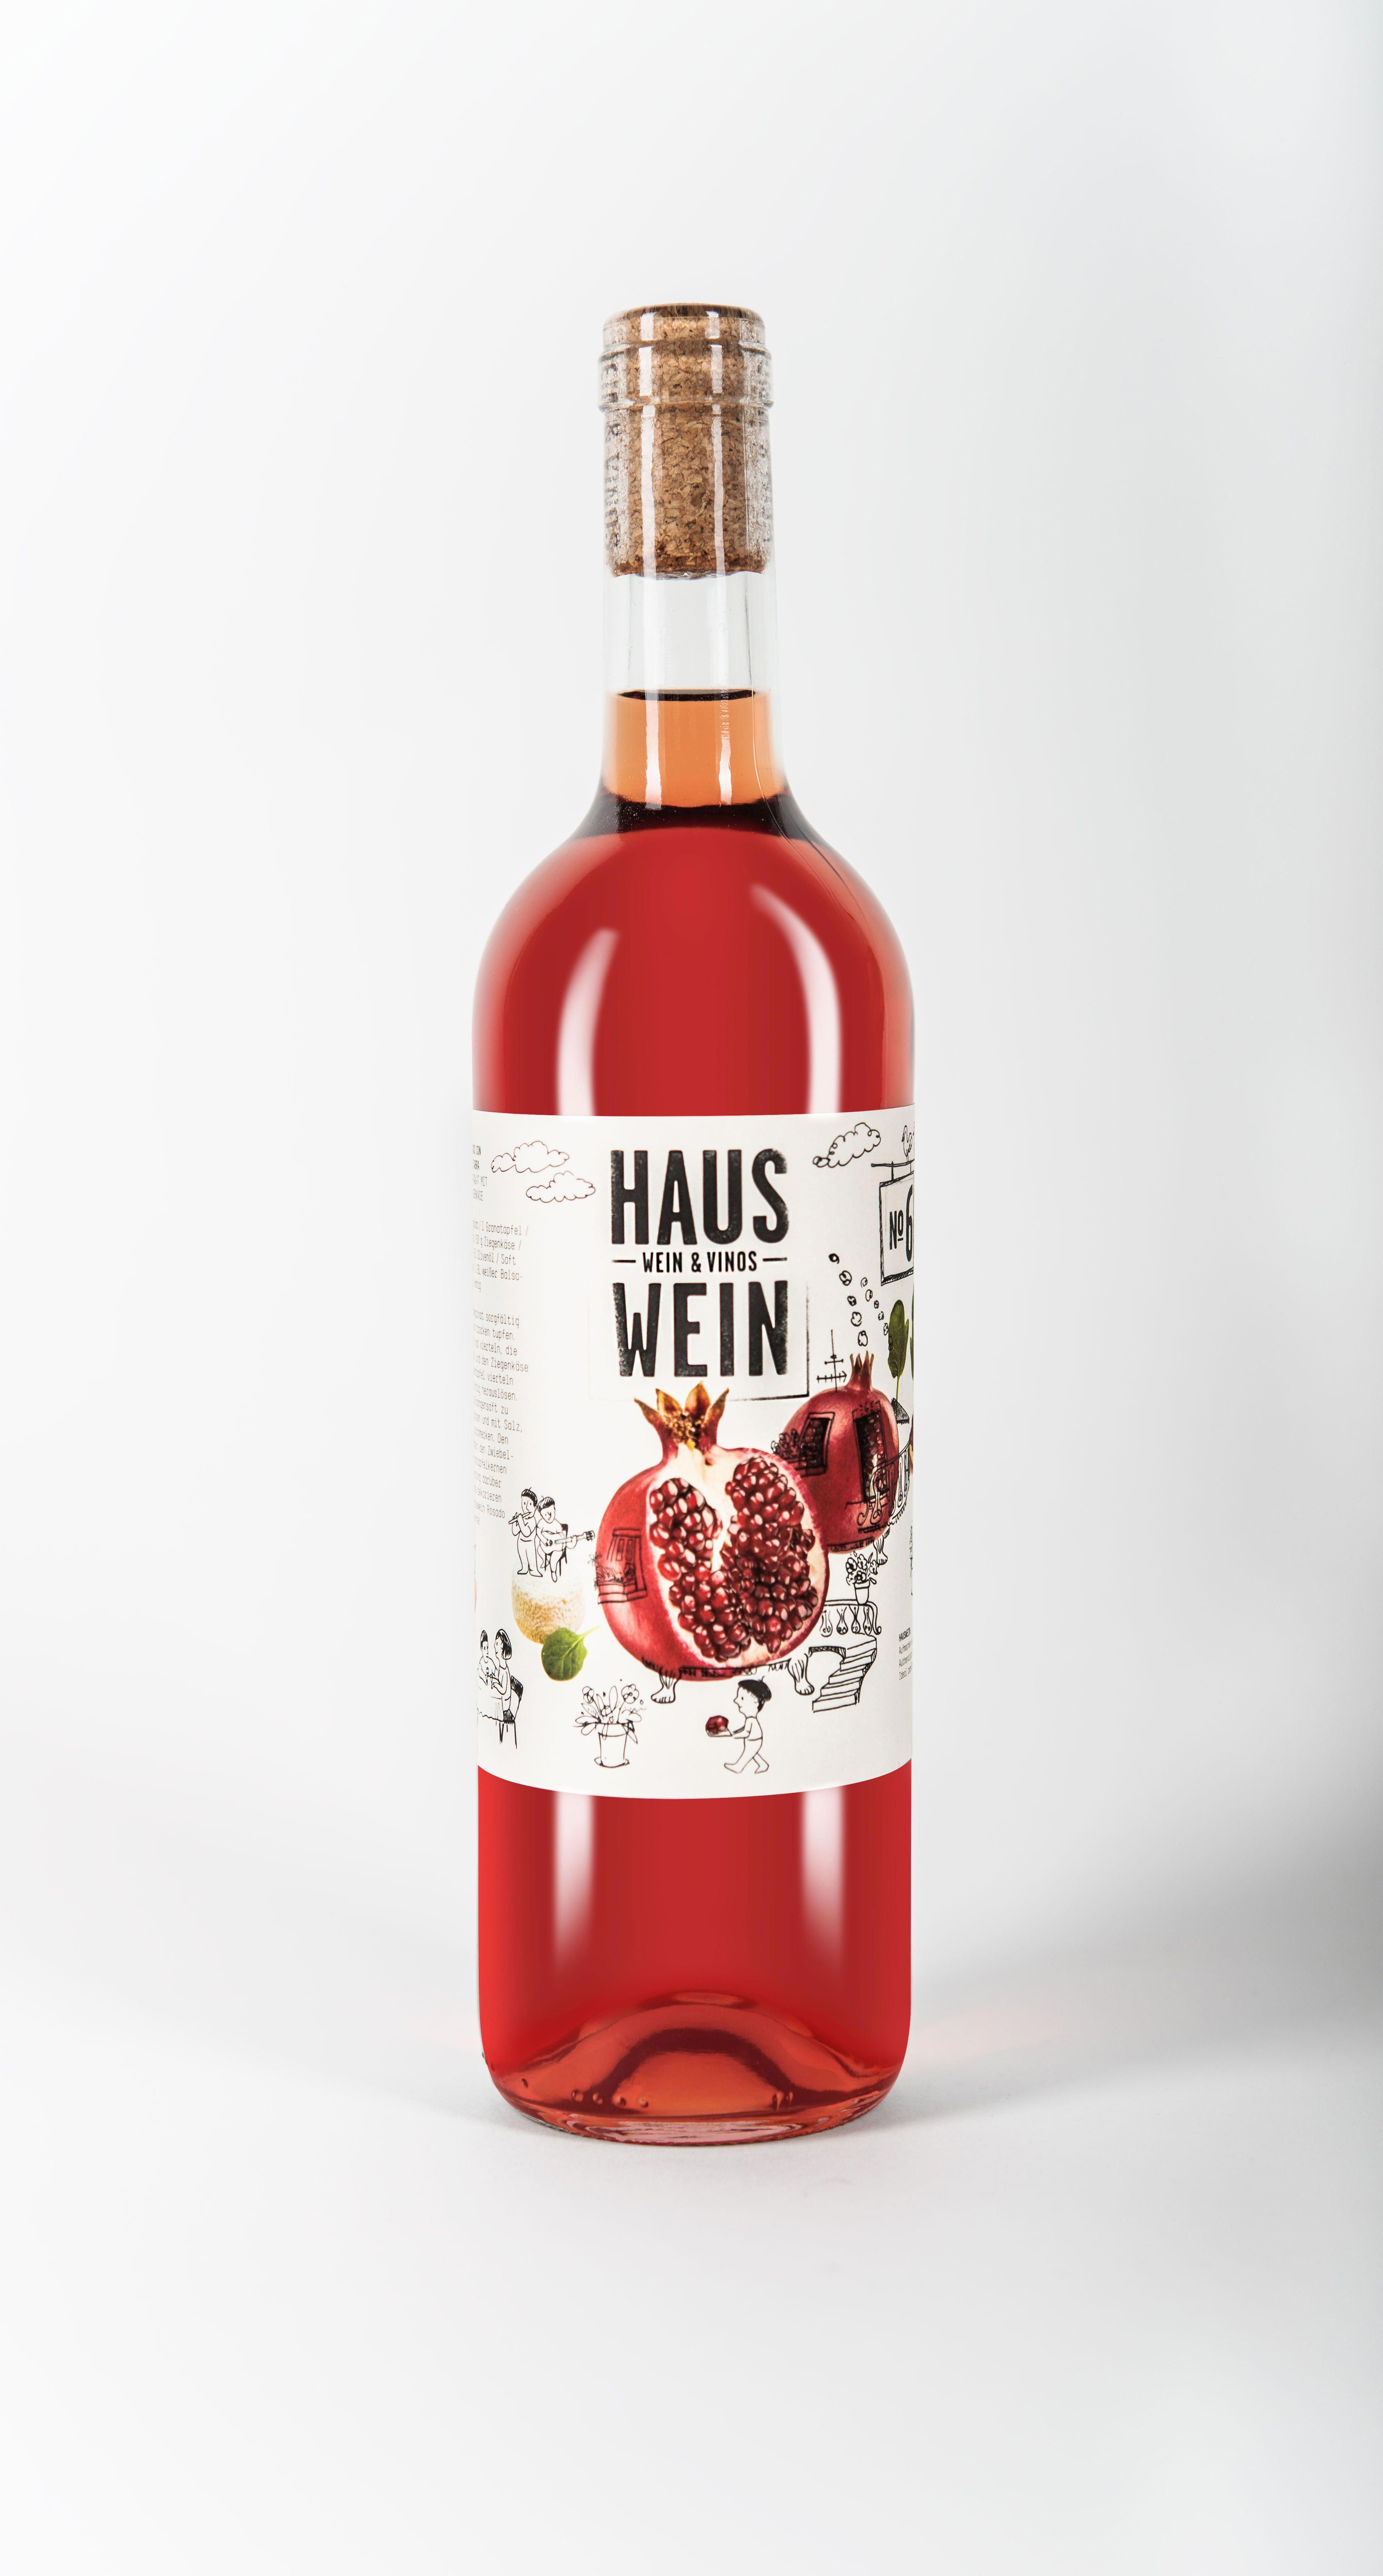 Shipping Wine To Texas Wineequipment Wein Flaschen Design Weinetiketten